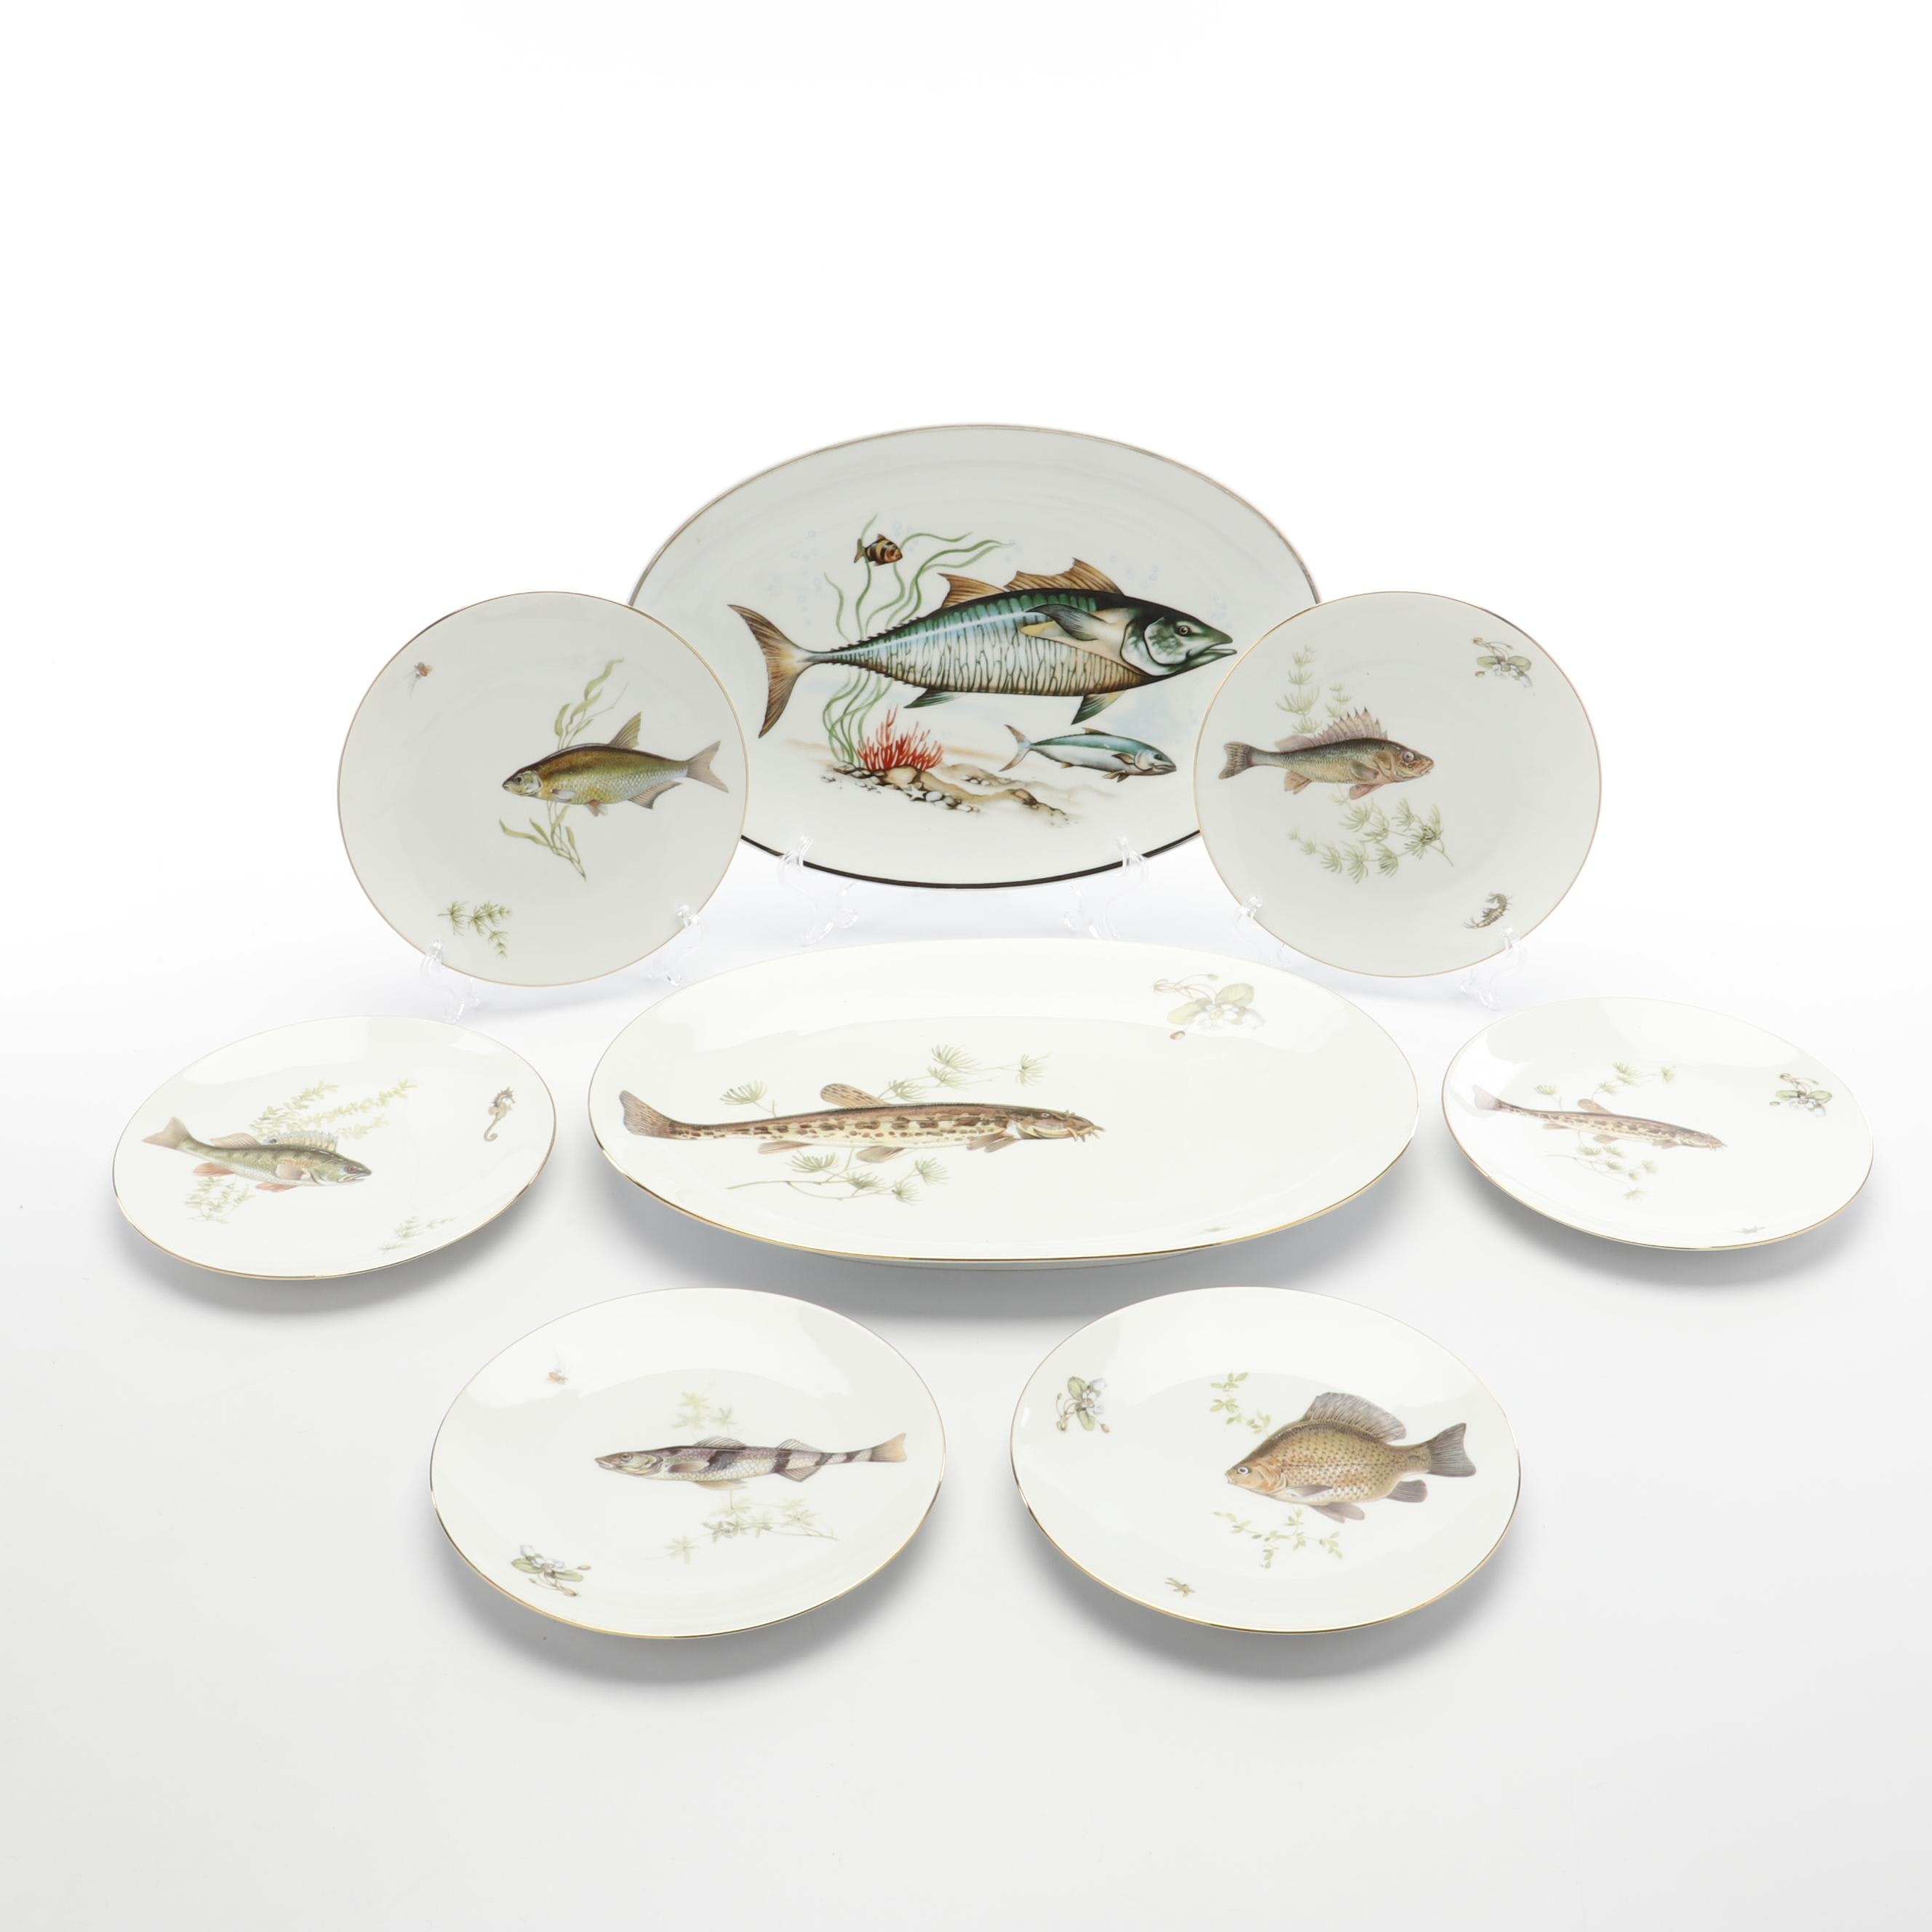 Fish Themed Porcelain Dinnerware featuring Bareuther & Co.